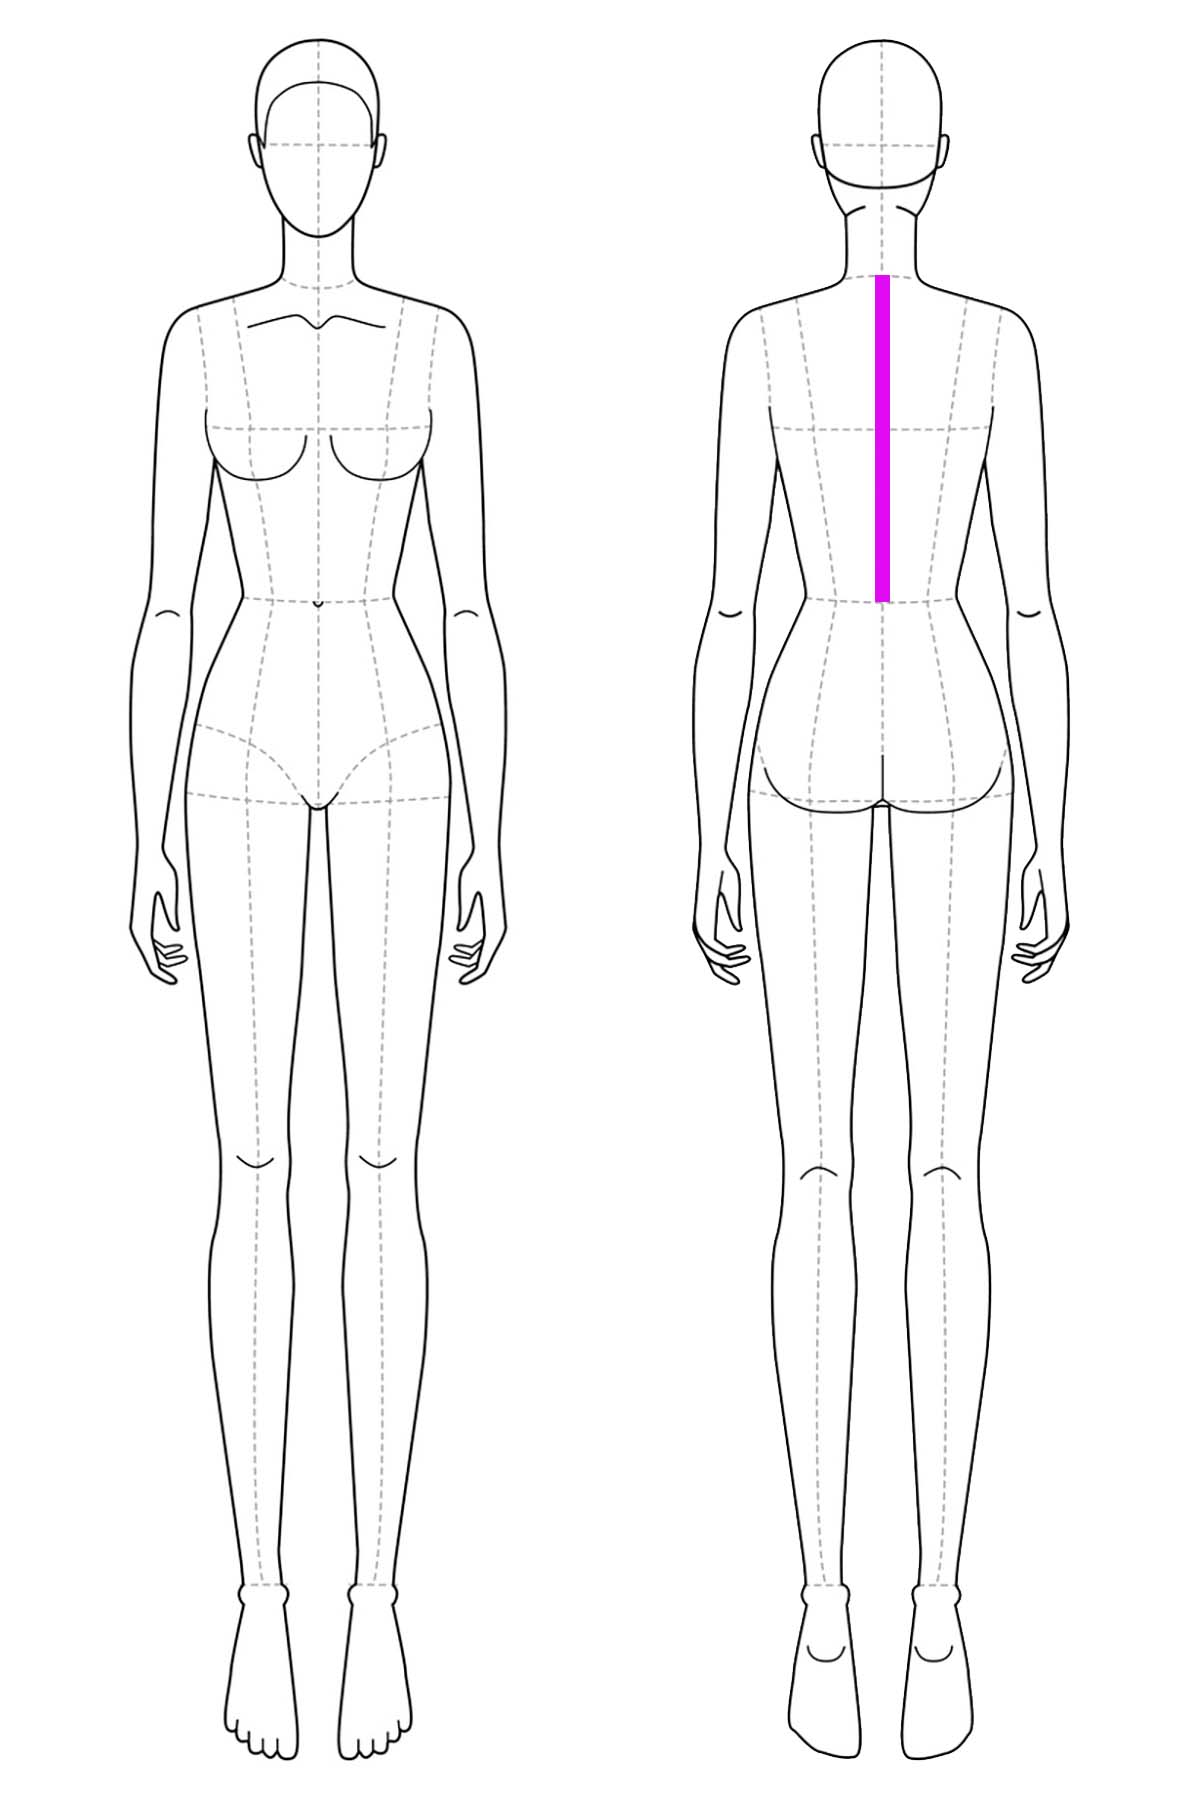 A set of line drawings of a female body, front and back views. A bright pink line has been drawn on it to indicate back waist measurement.